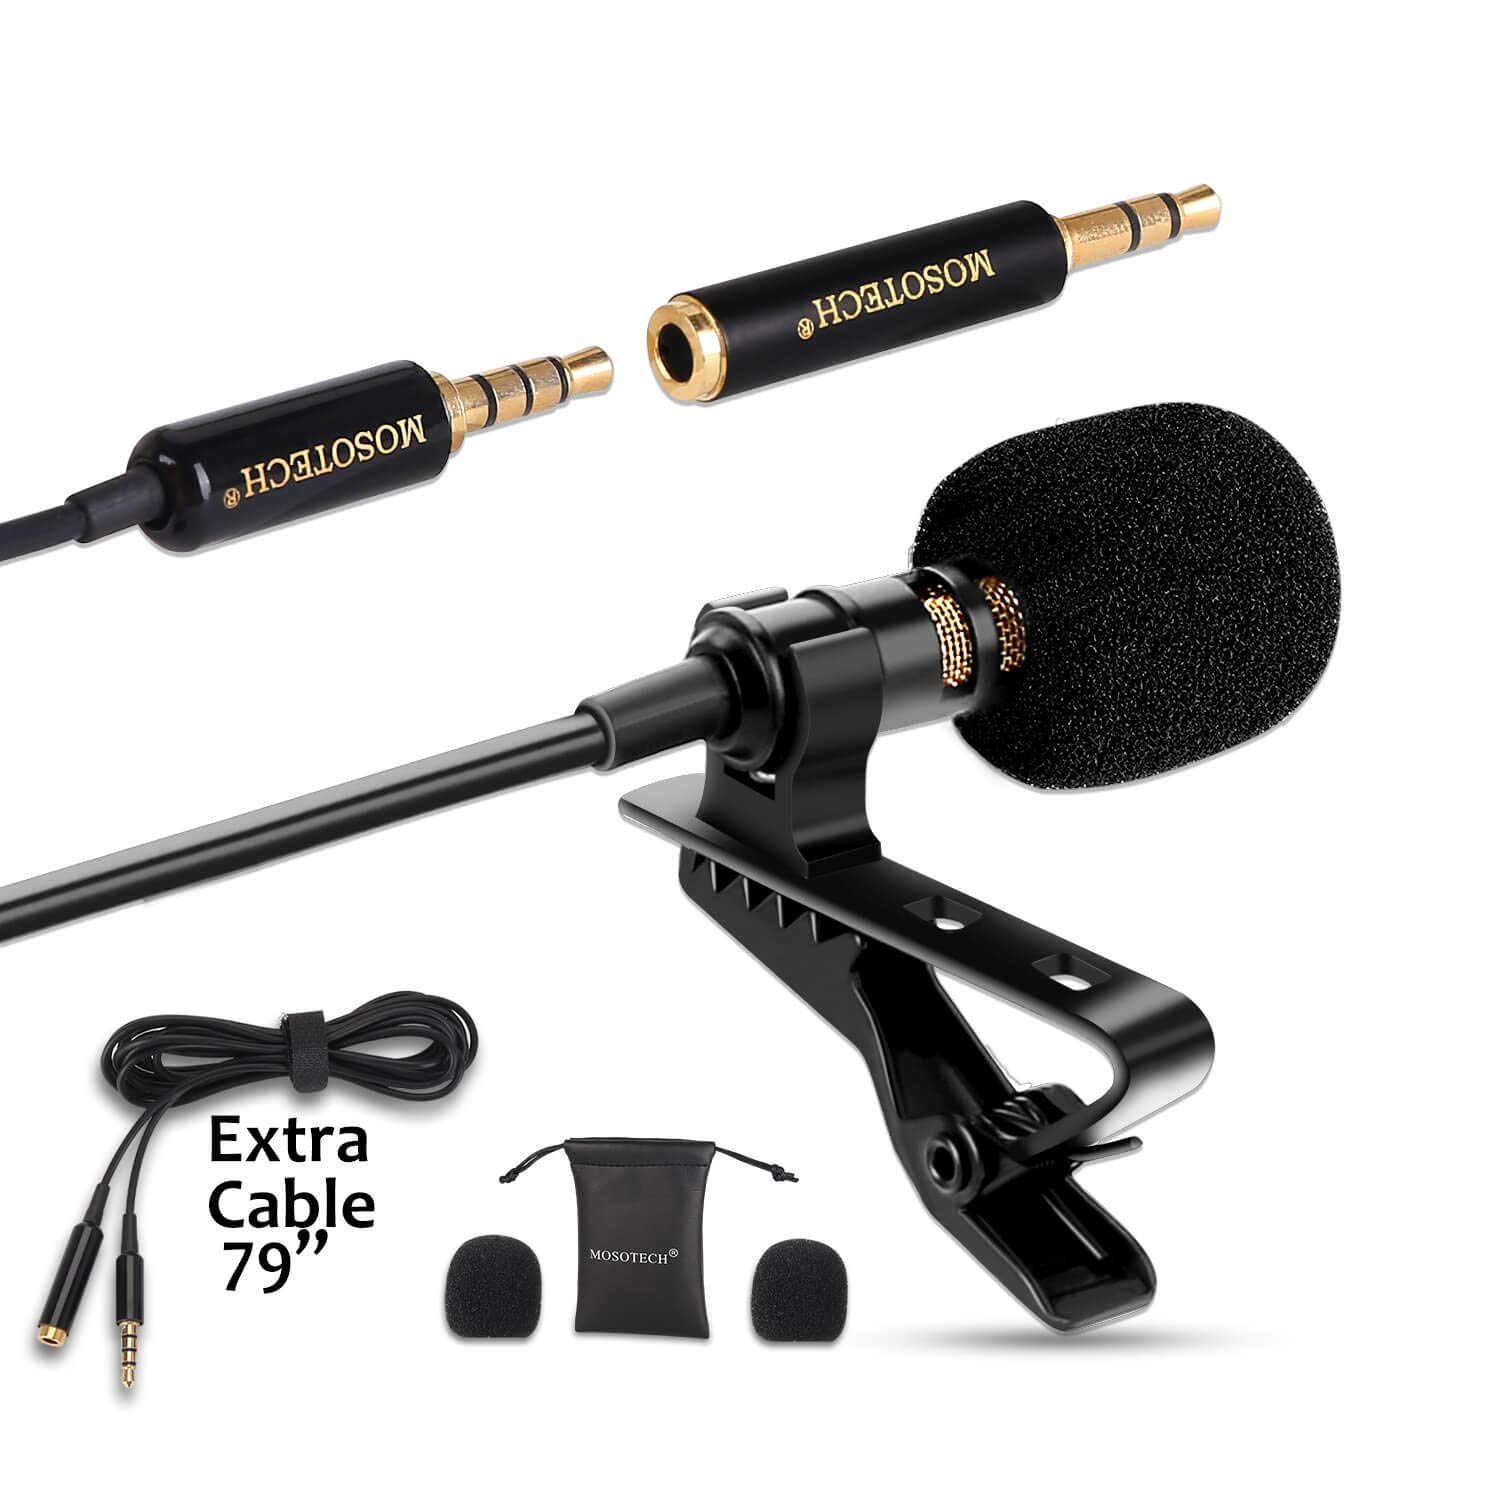 Lavalier Microphone, Omnidirectional Condenser Lavalier MIC for Recording YouTube Interview (Suitable for iPhone/Android/Windows/Camera)